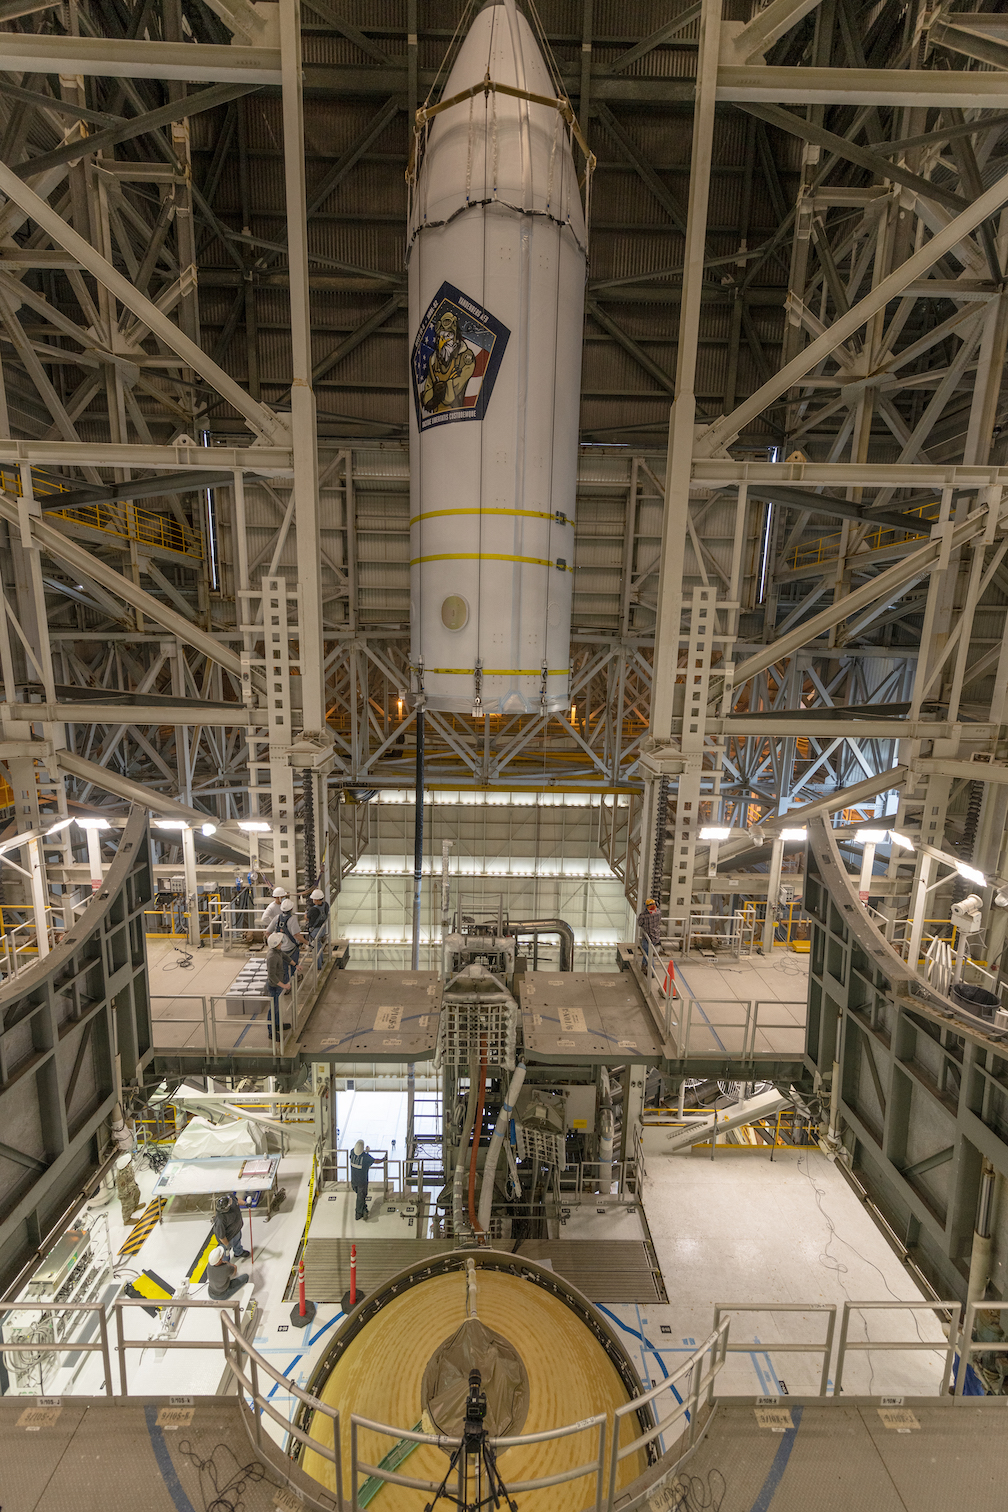 The NROL-82 payload is hoisted by crane to be mounted to the Delta IV Heavy rocket. Photo by United Launch Alliance